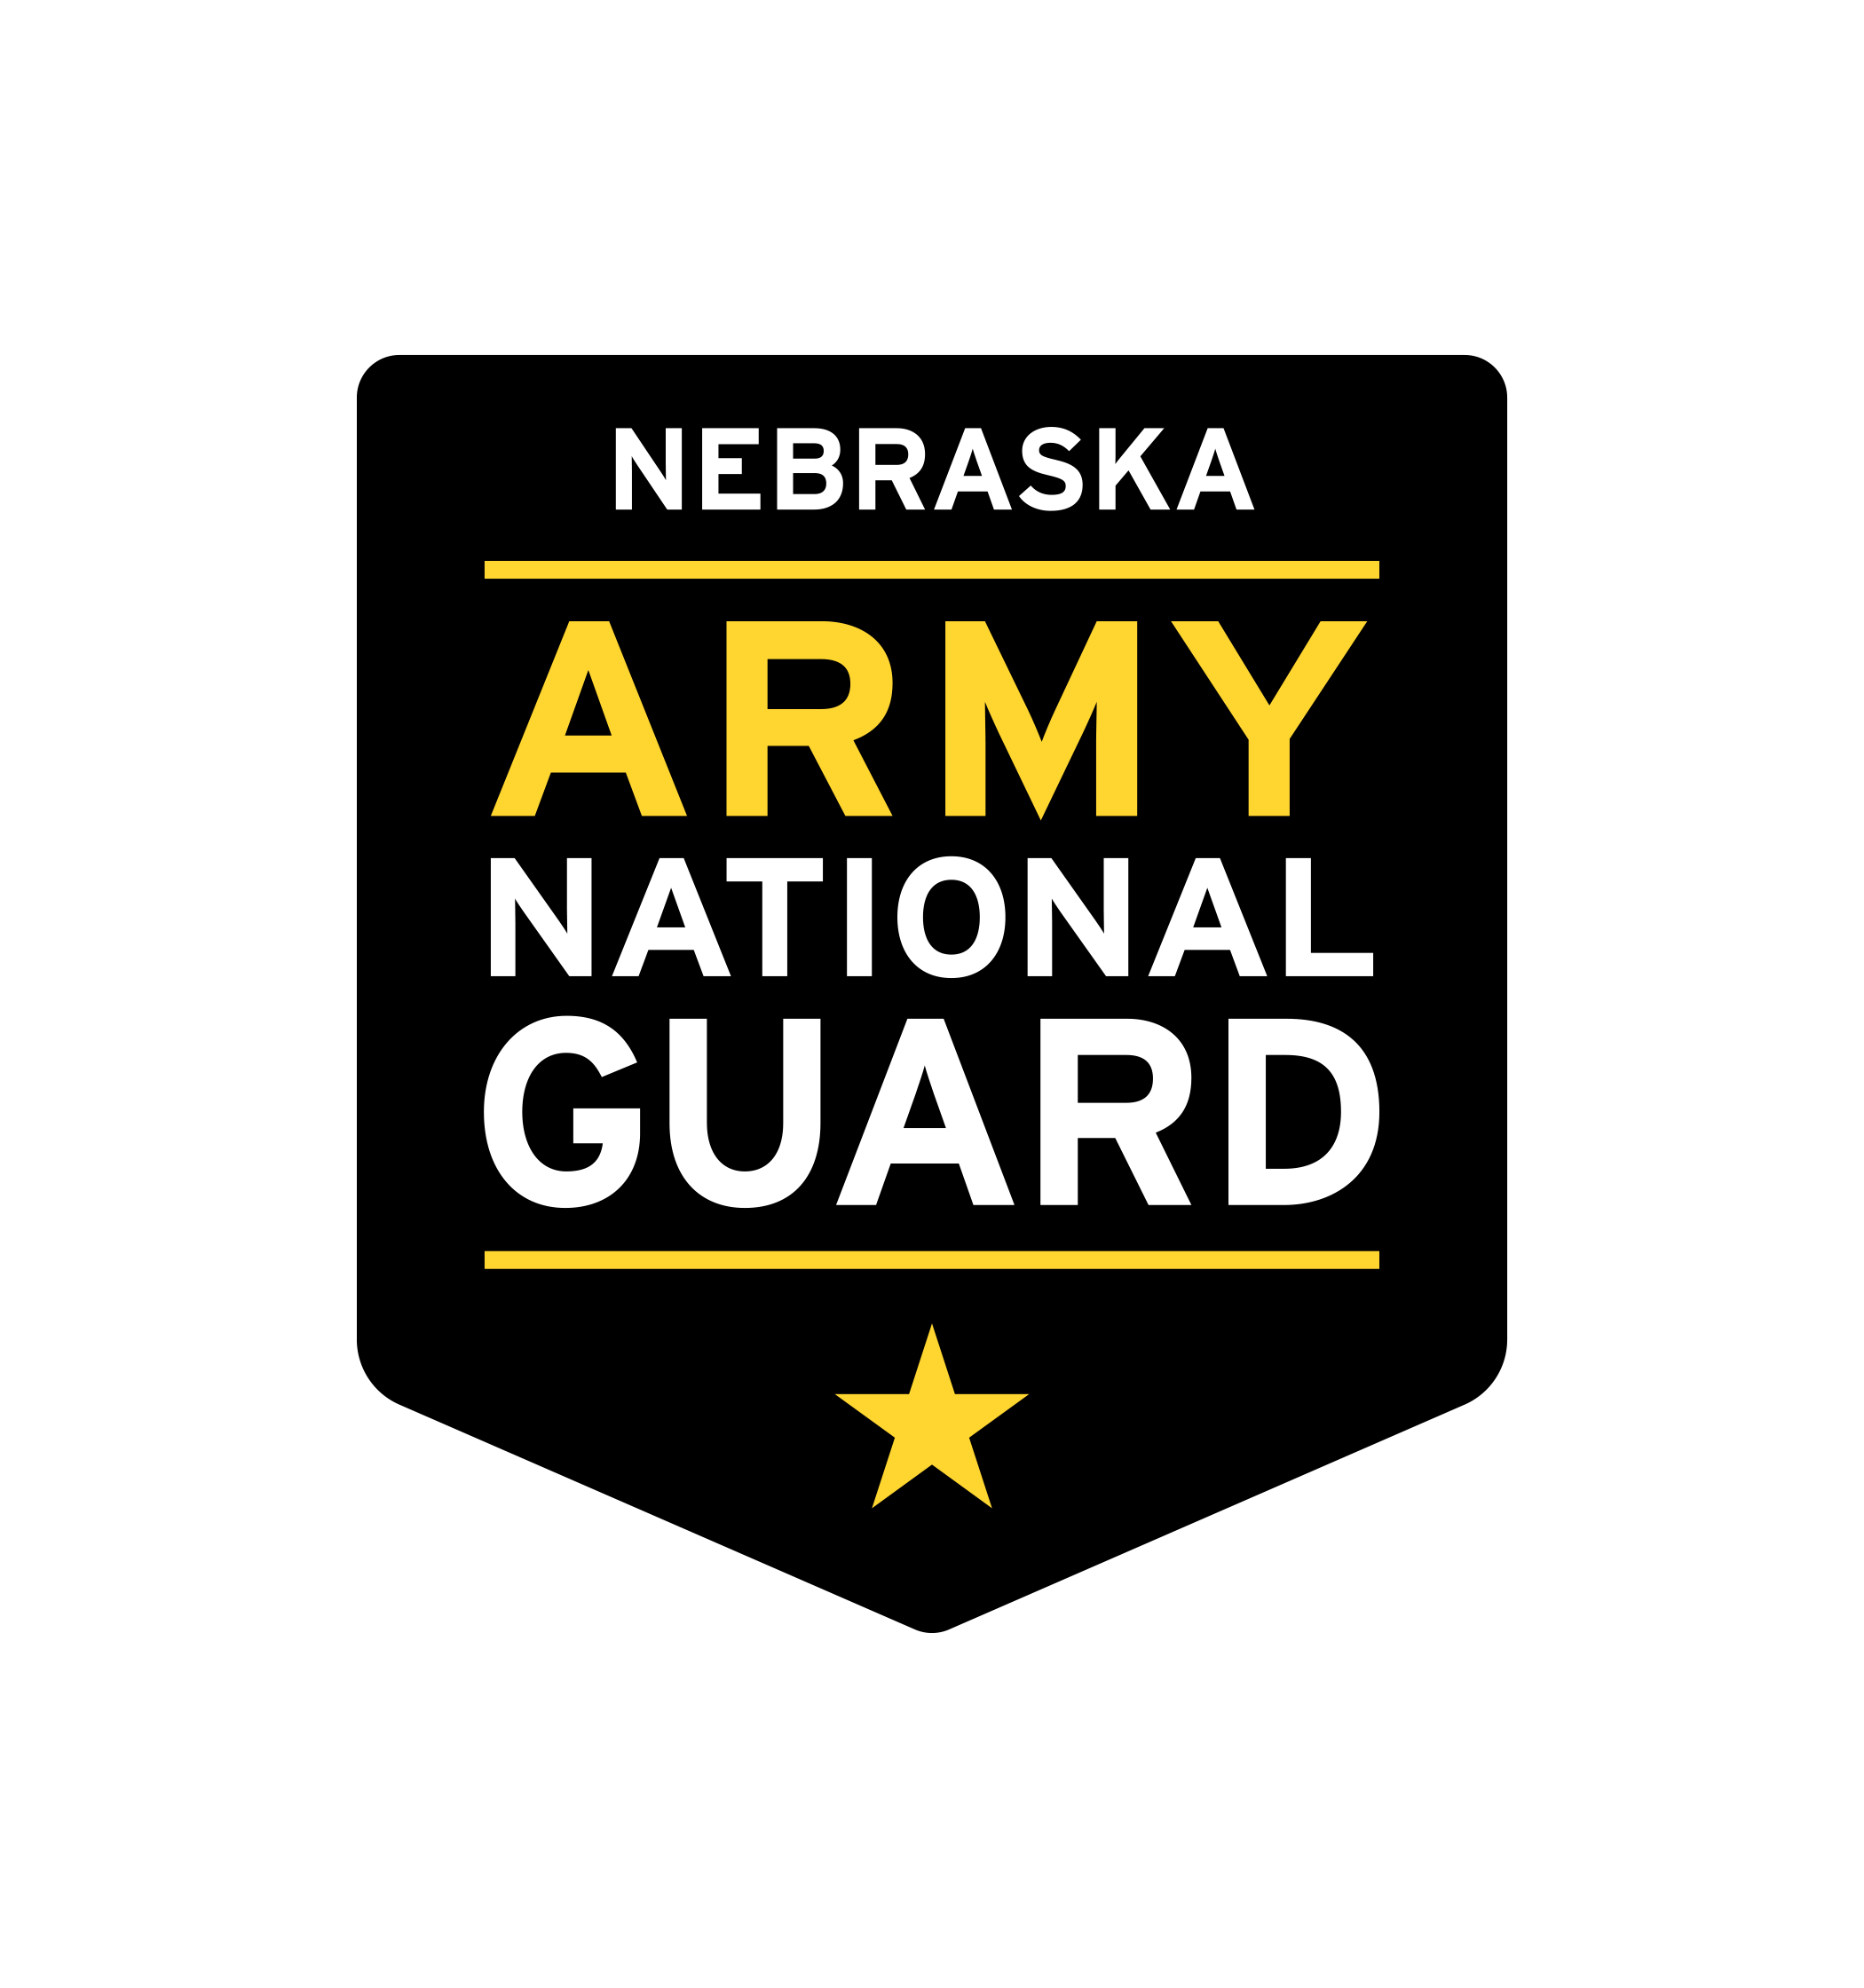 Nebraska Army National Guard